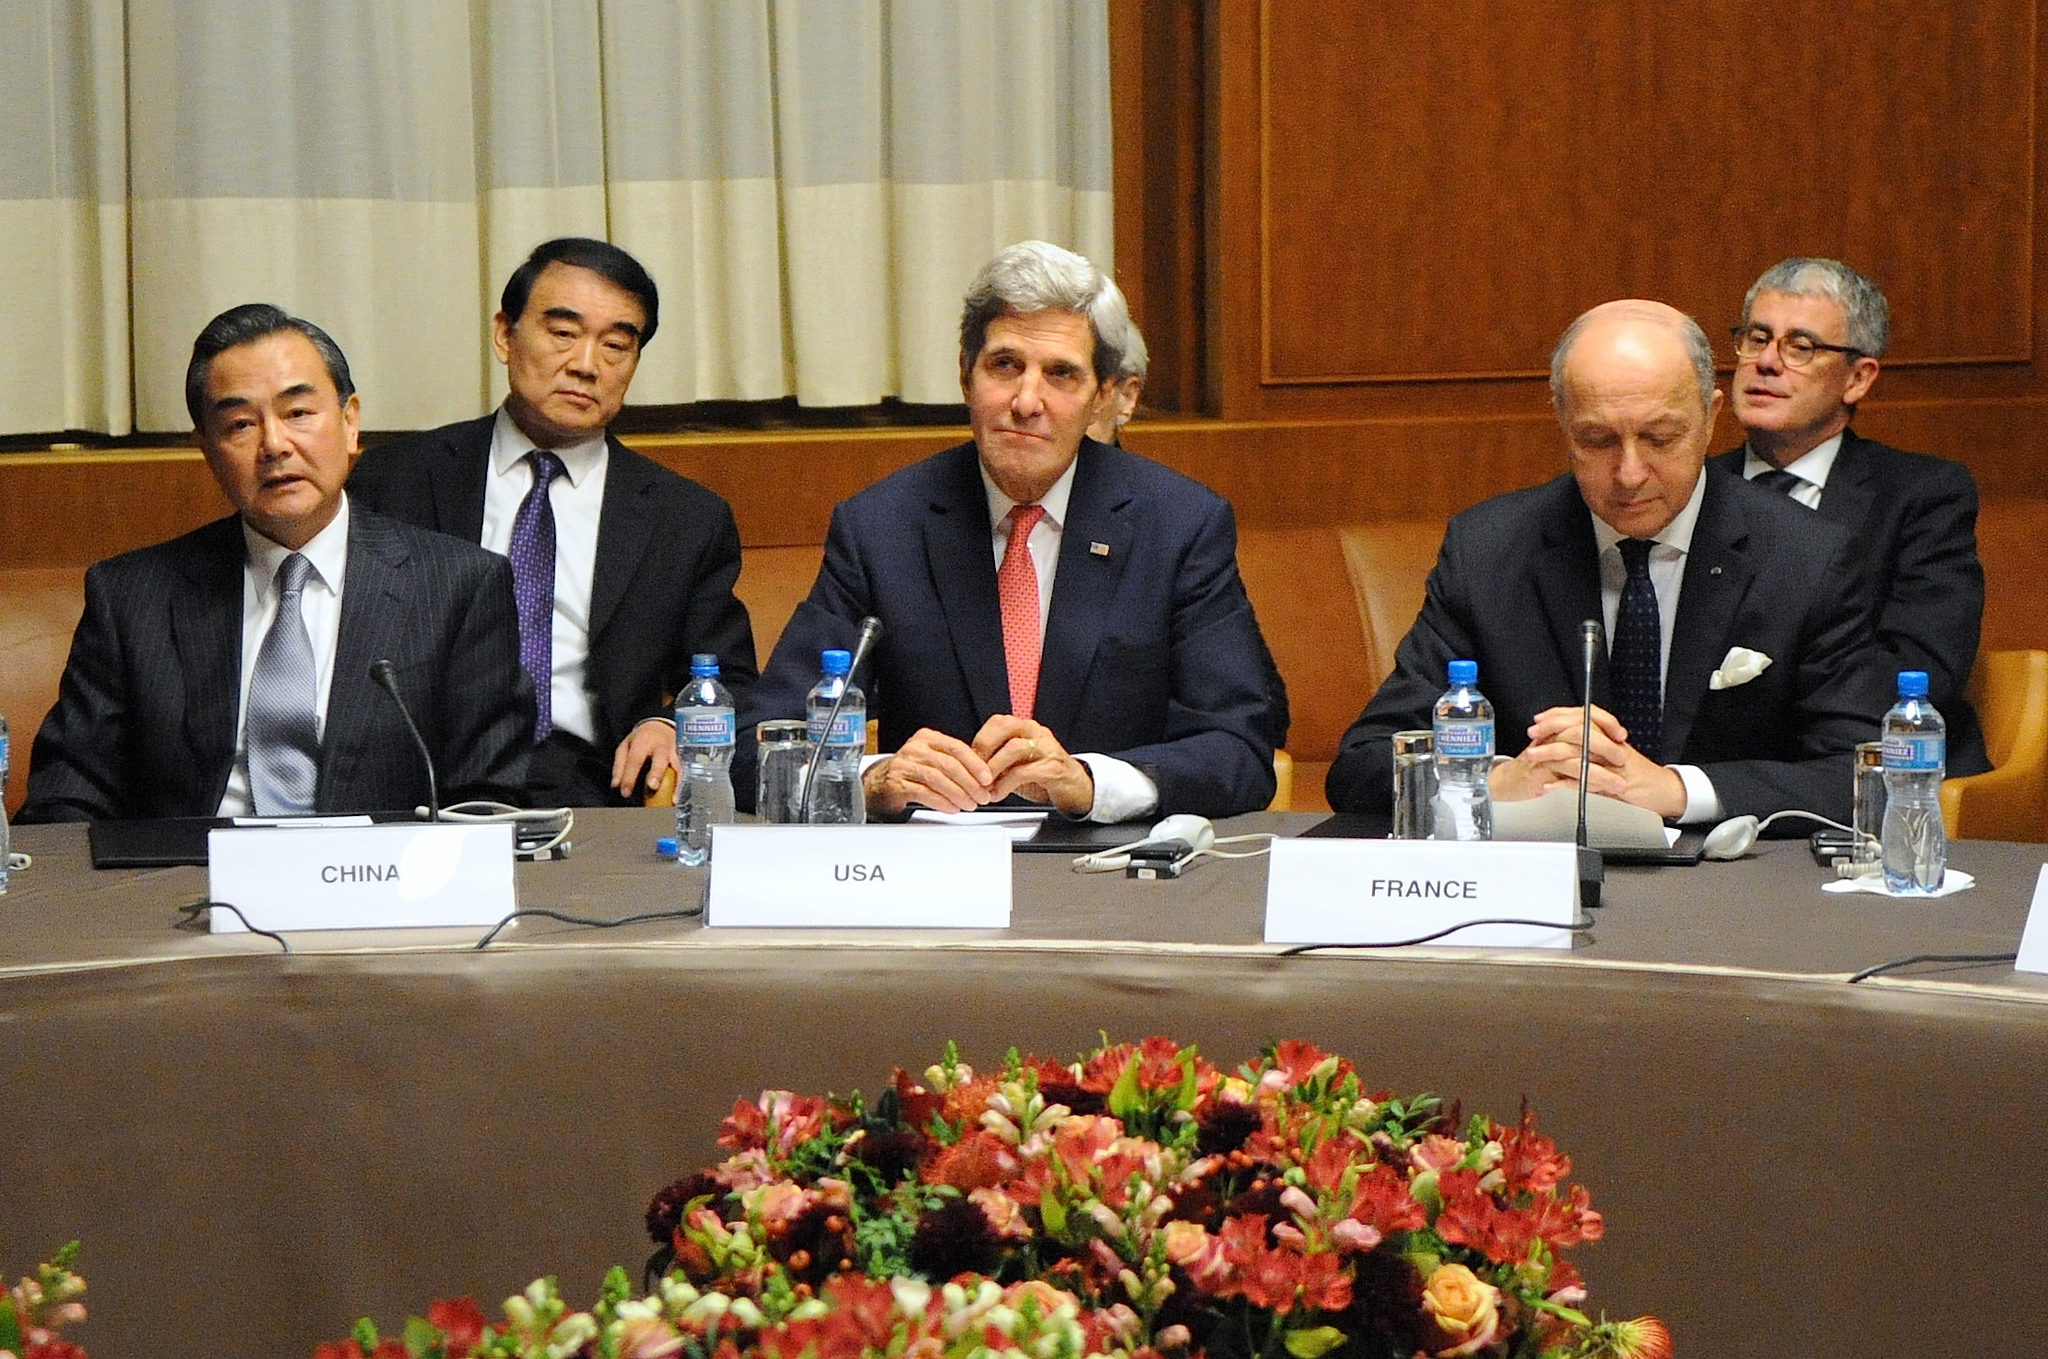 U.S. Secretary of State John Kerry sits between Chinese Foreign Minister Wang Yi and French Foreign Minister Laurent Fabius at the United Nations Headquarters after the P5+1 member nations concluded a nuclear deal with Iran in Geneva, Switzerland, on November 24, 2013 via Flickr Commons